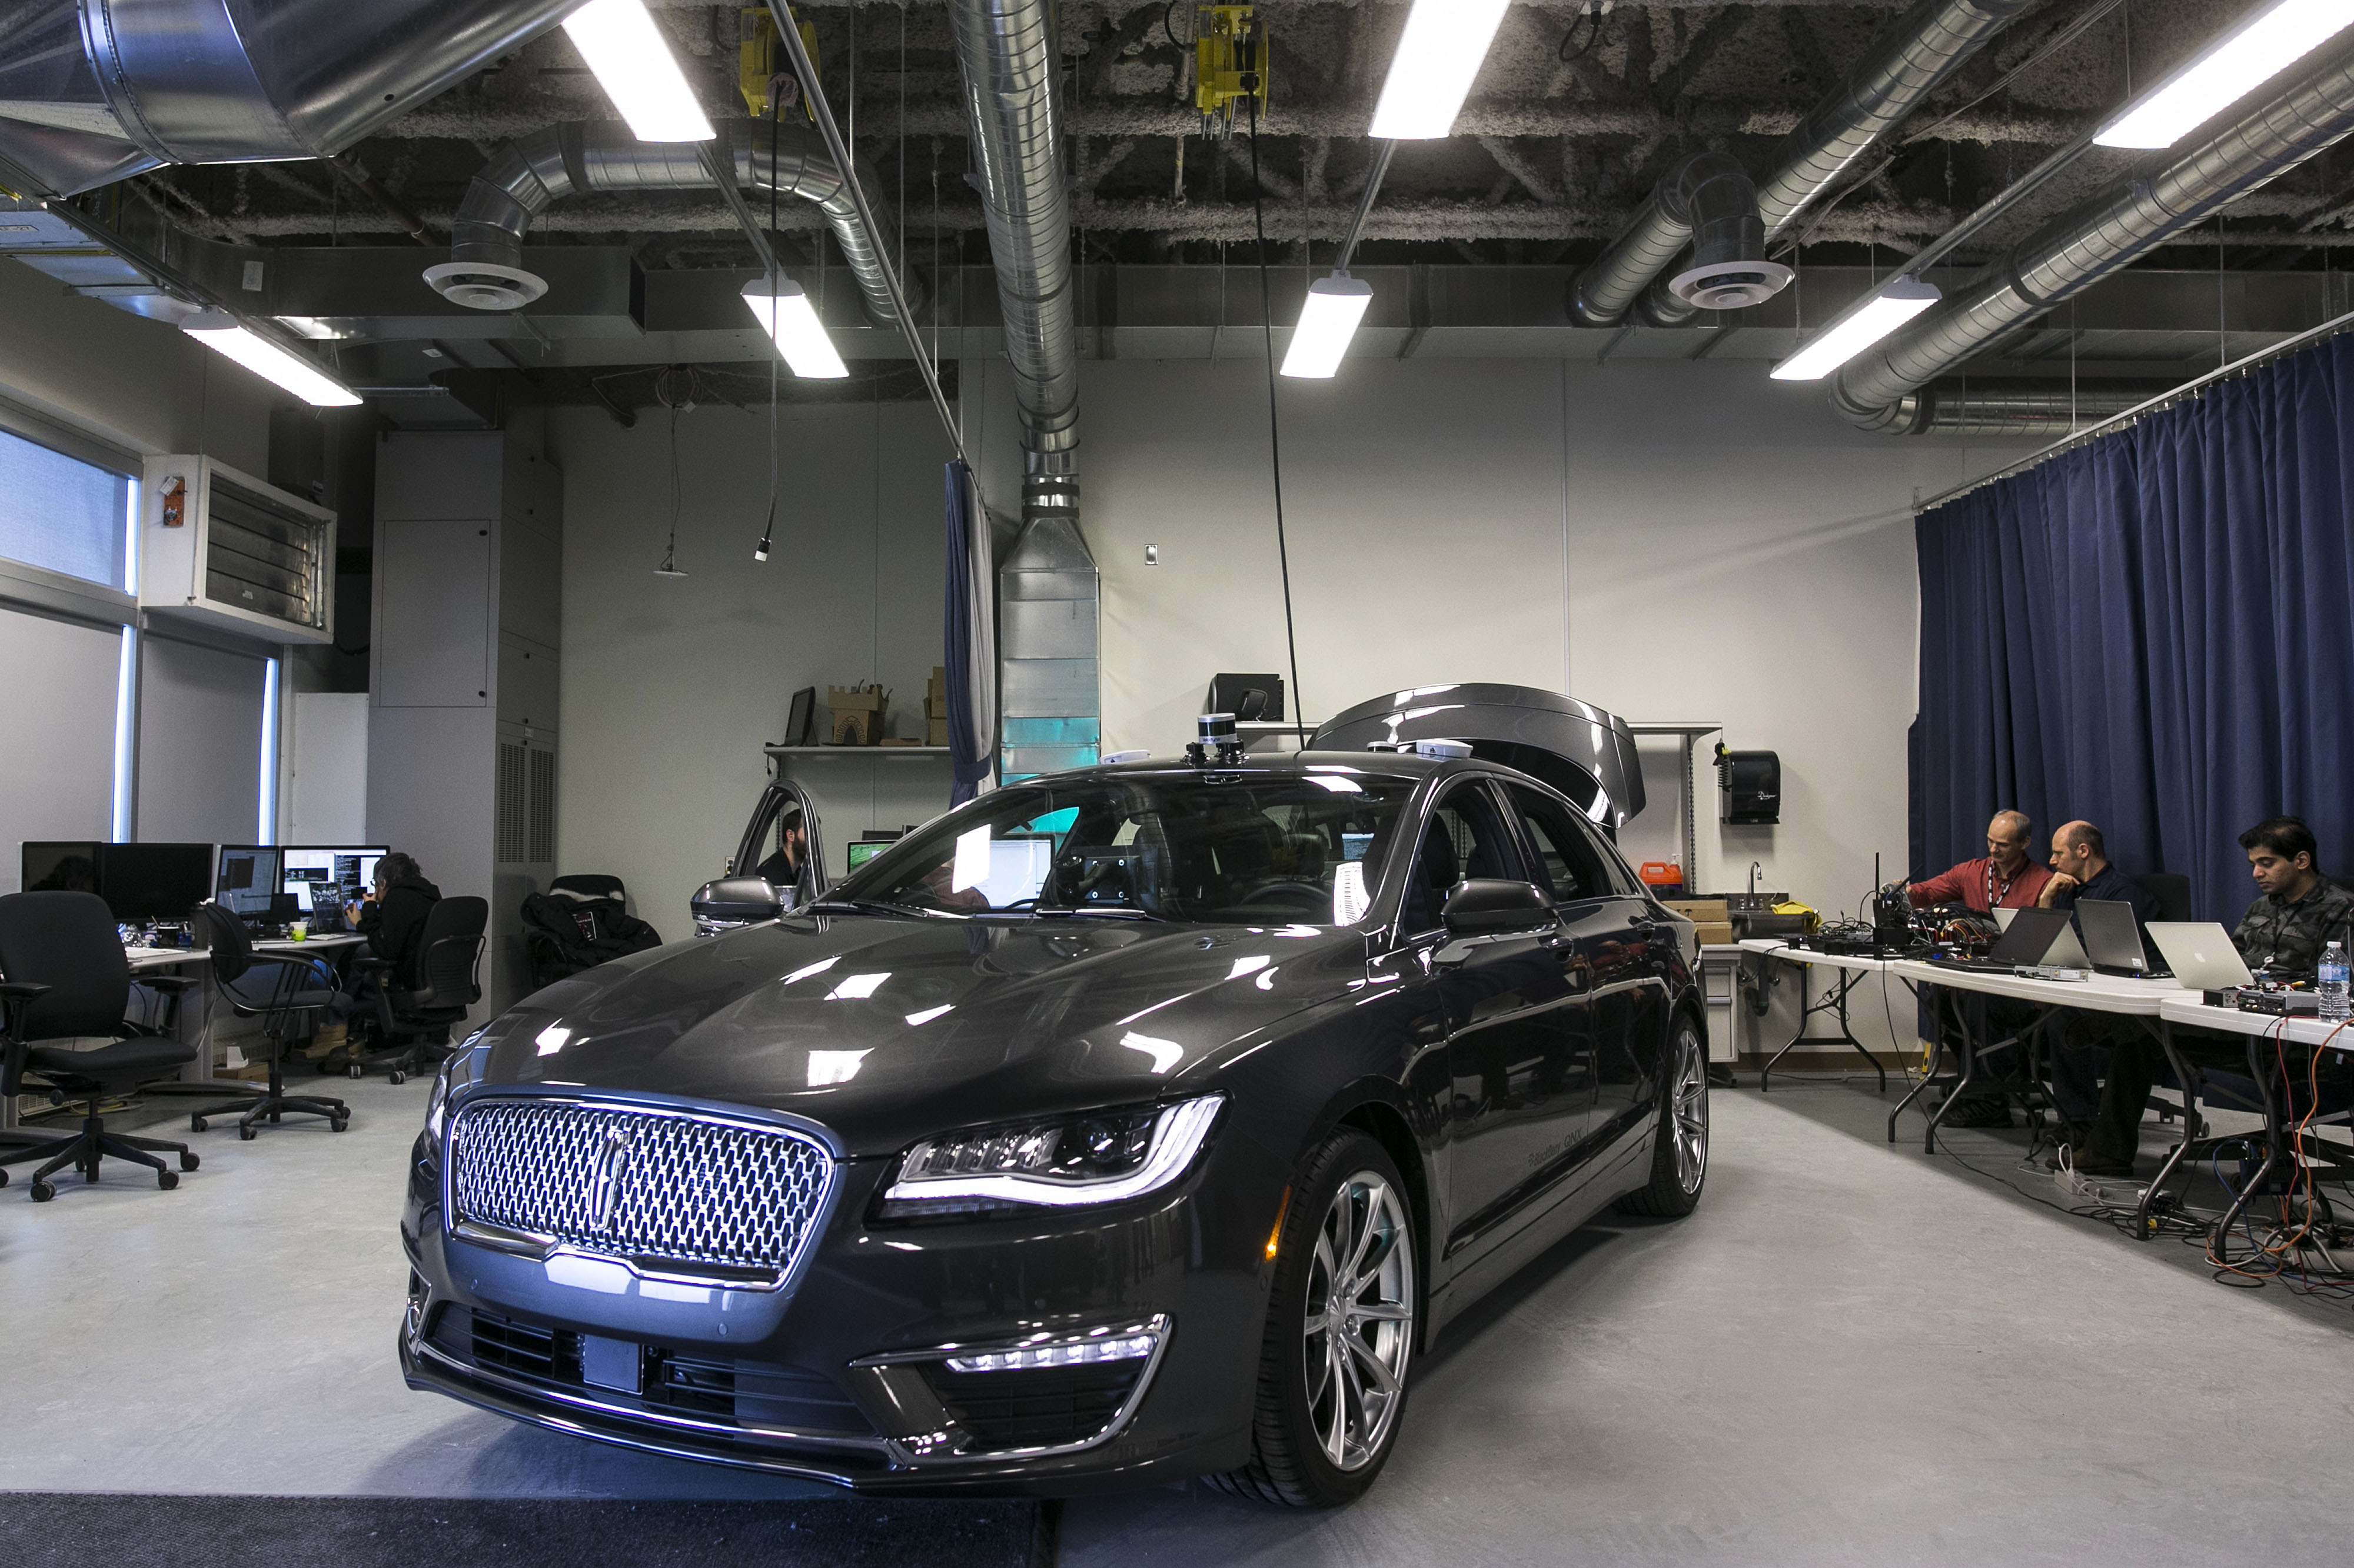 BlackBerry Ltd. Opens Site To Shore Up Self-Driving Car Research